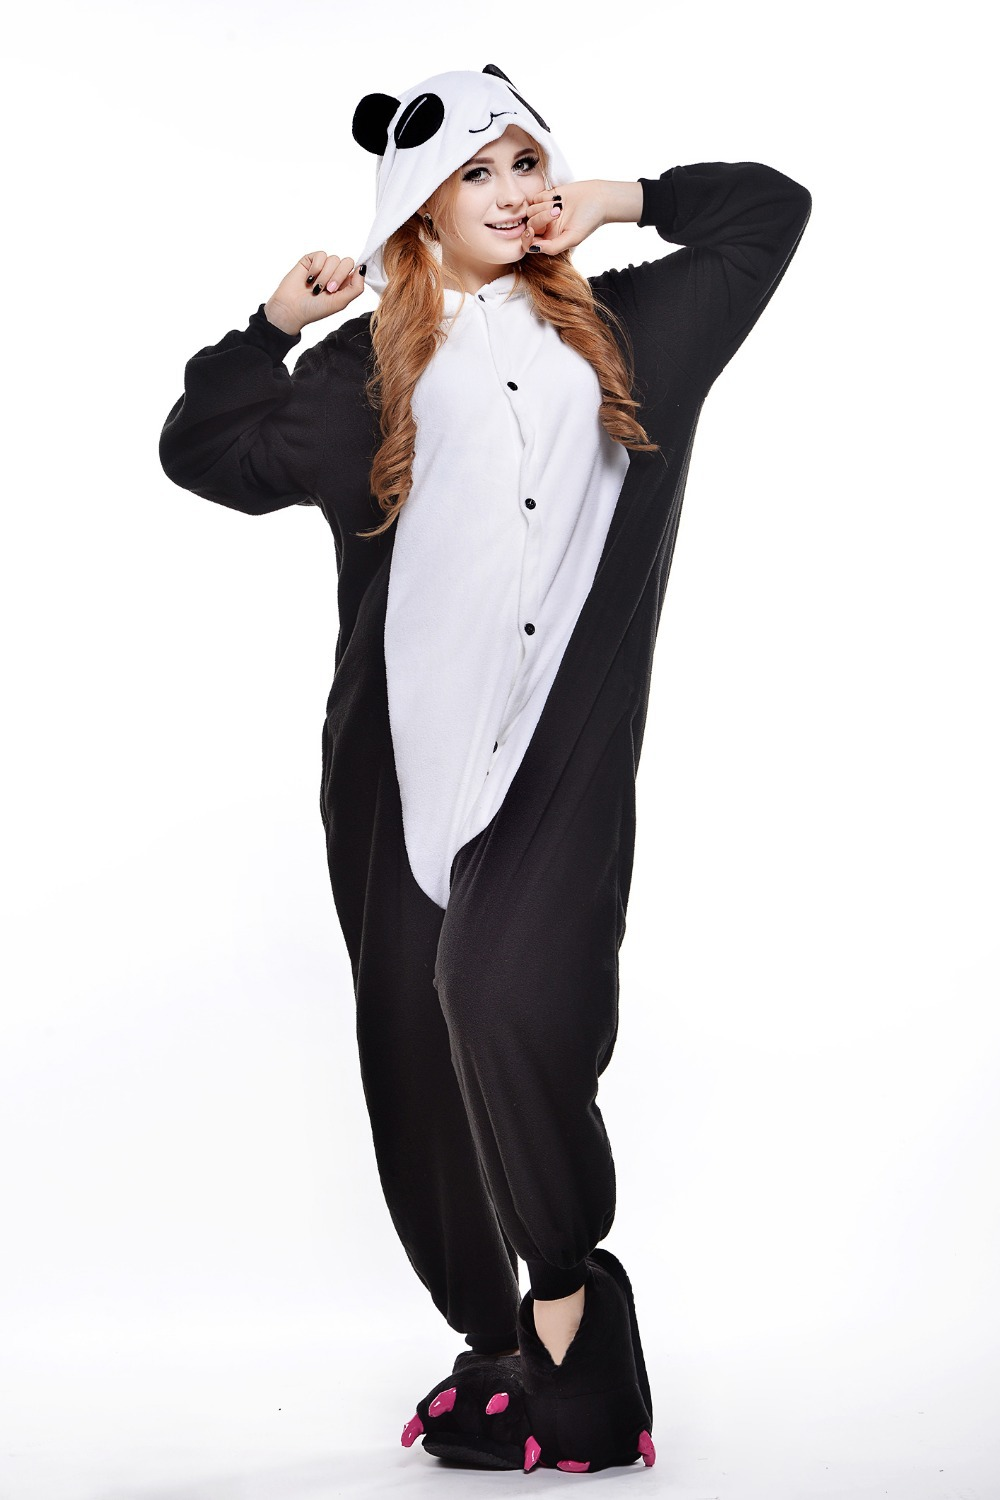 Aliexpress.com : Buy Plus Size Red Eye Panda Costume/ Halloween ...